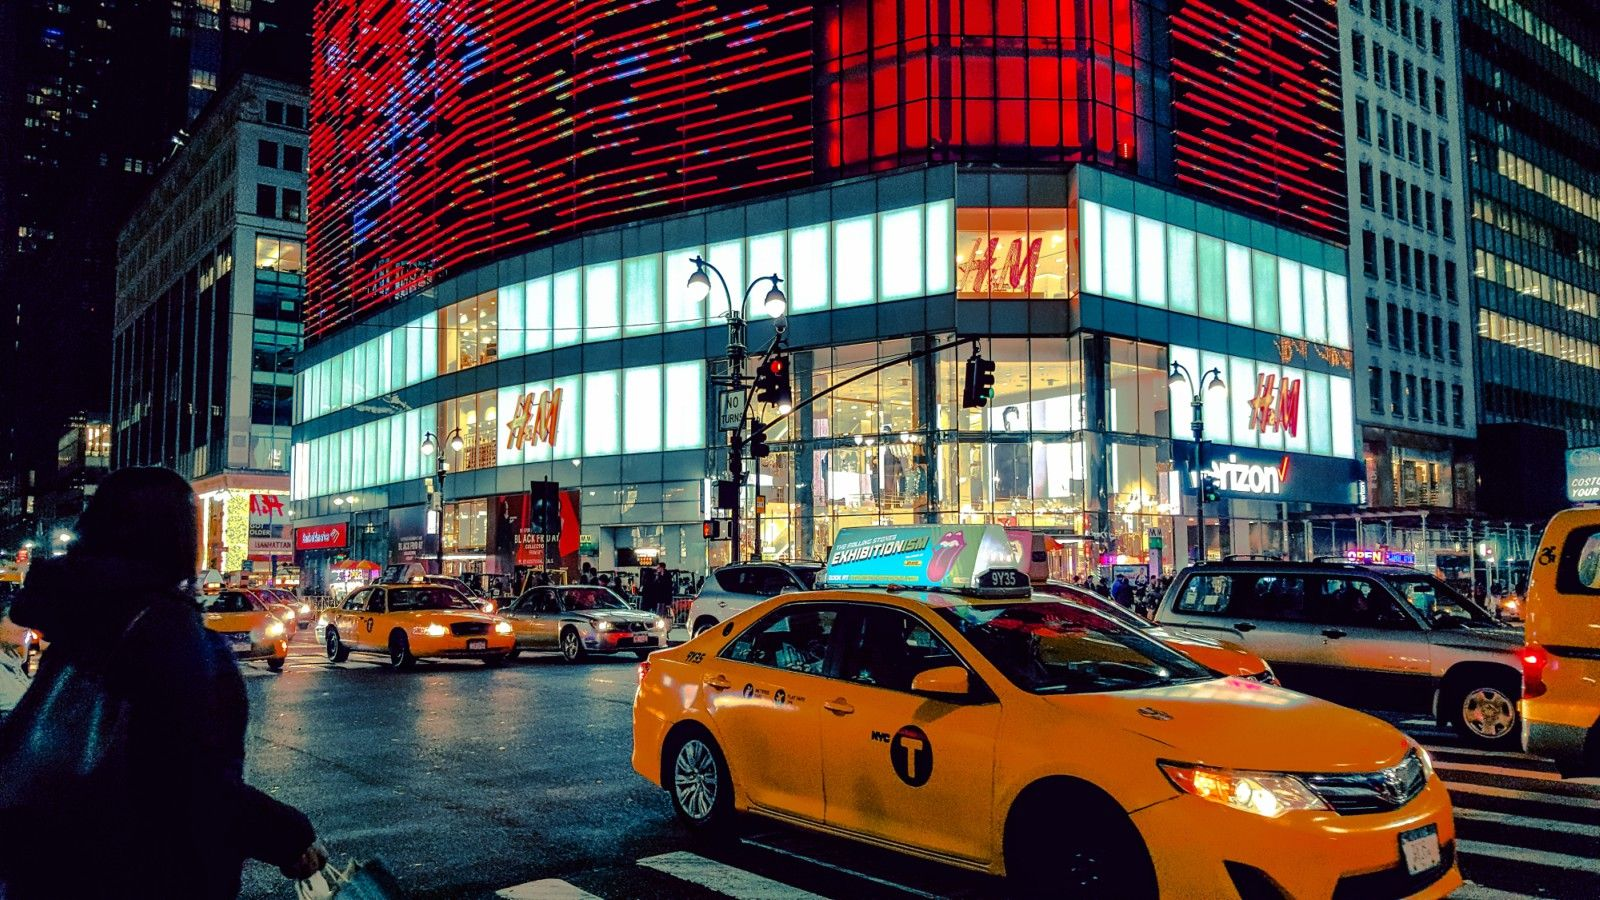 Things to do in NYC - Shopping